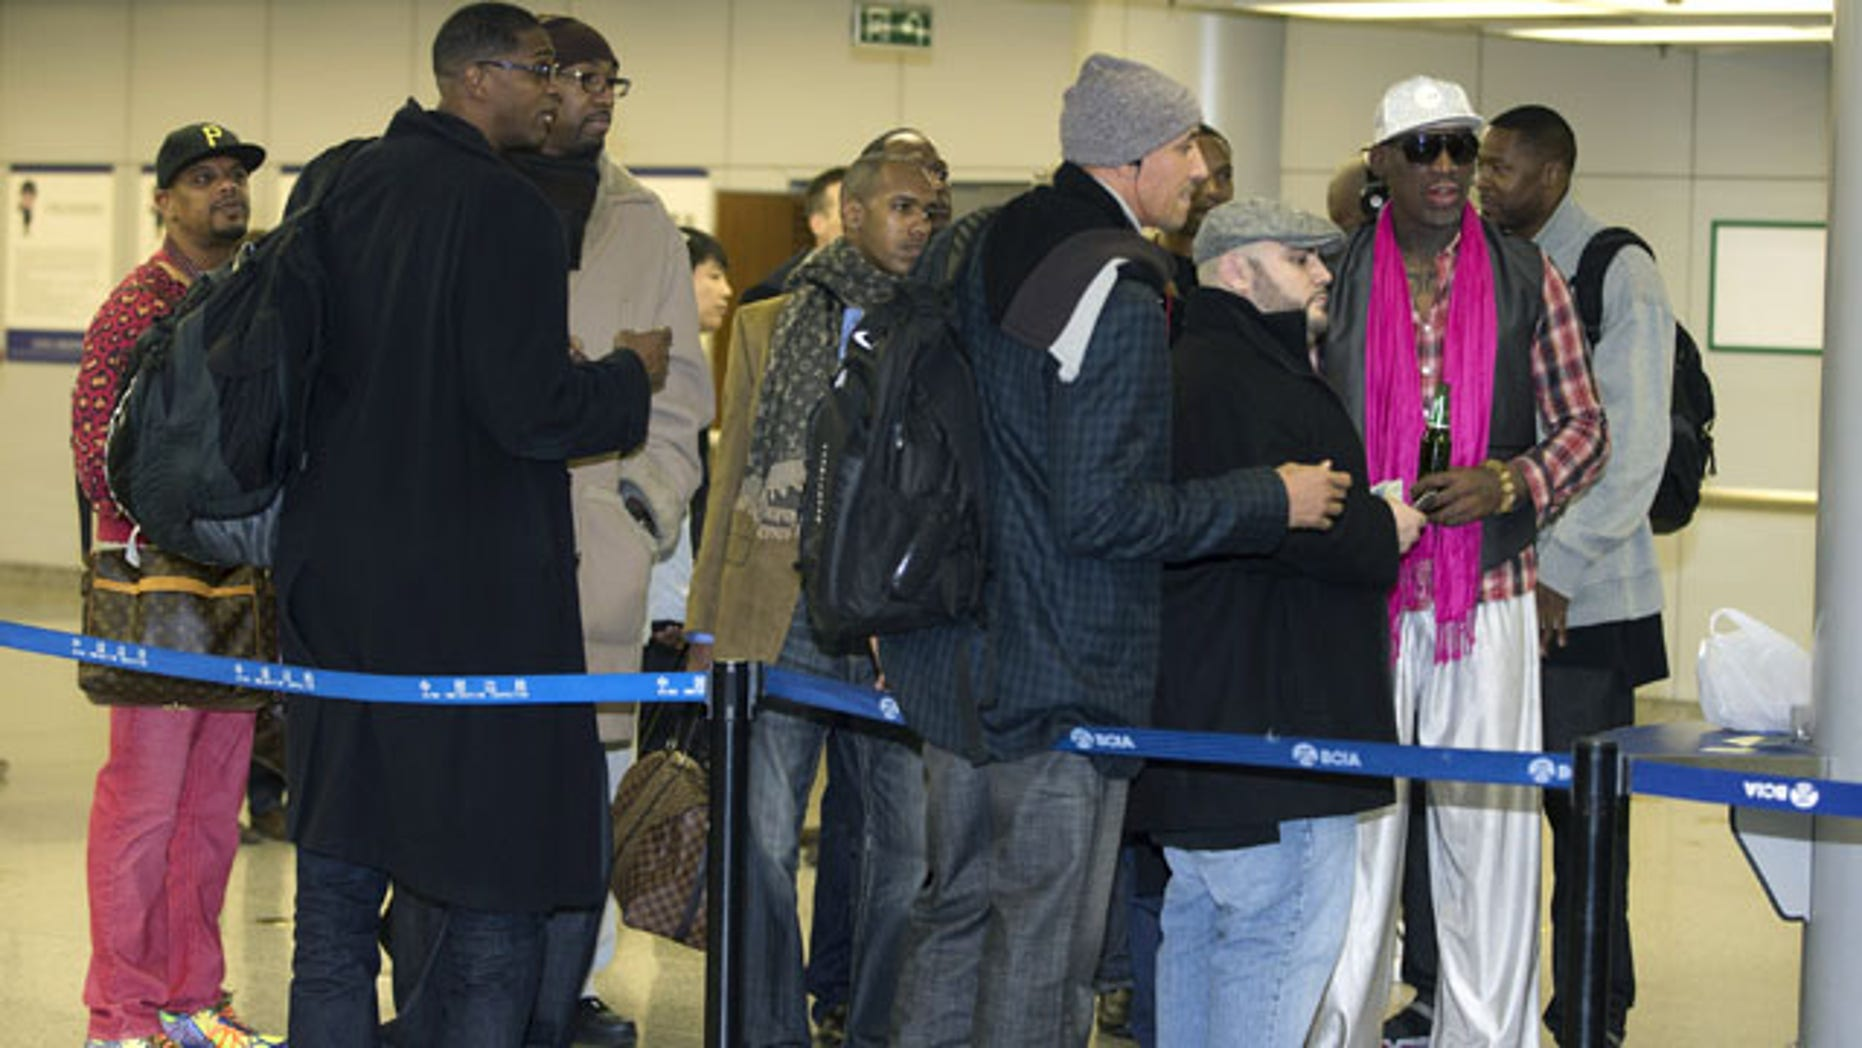 January 6, 2014: Former NBA basketball player Dennis Rodman, right, and former NBA players wait at the departure hall of Beijing International Capital Airport. Rodman says he's going forward with an exhibition game including former NBA players in North Korea because he wants to connect with its people and let others know the sheltered communist country isn't so bad. (AP Photo/Andy Wong)